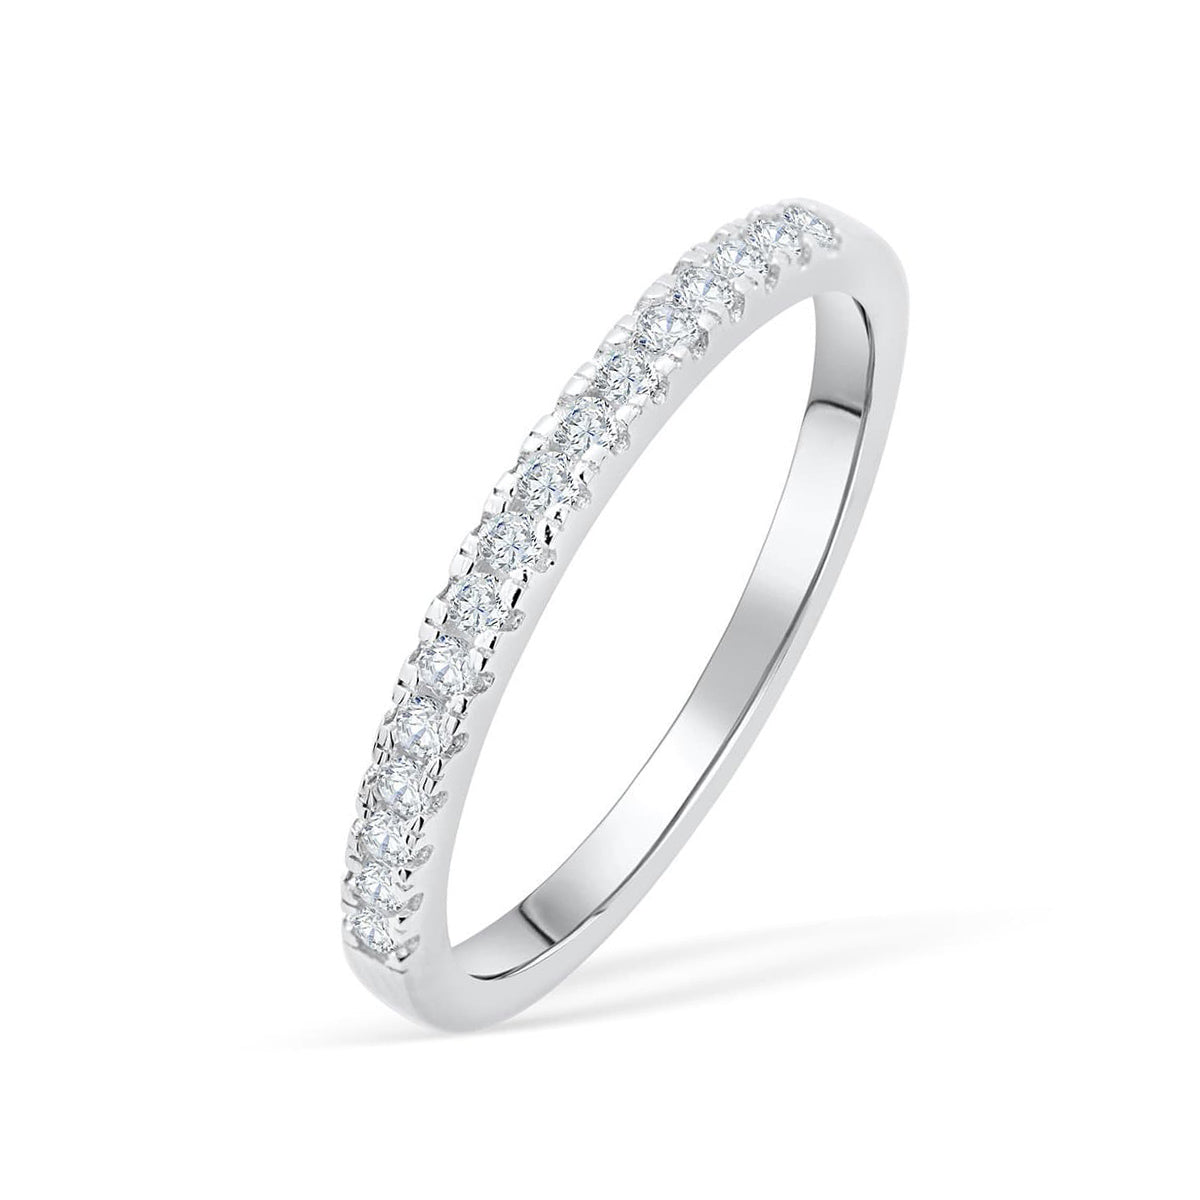 This is a graphic of Travel Engagement Rings & Wedding Bands – Modern Gents Trading Co.